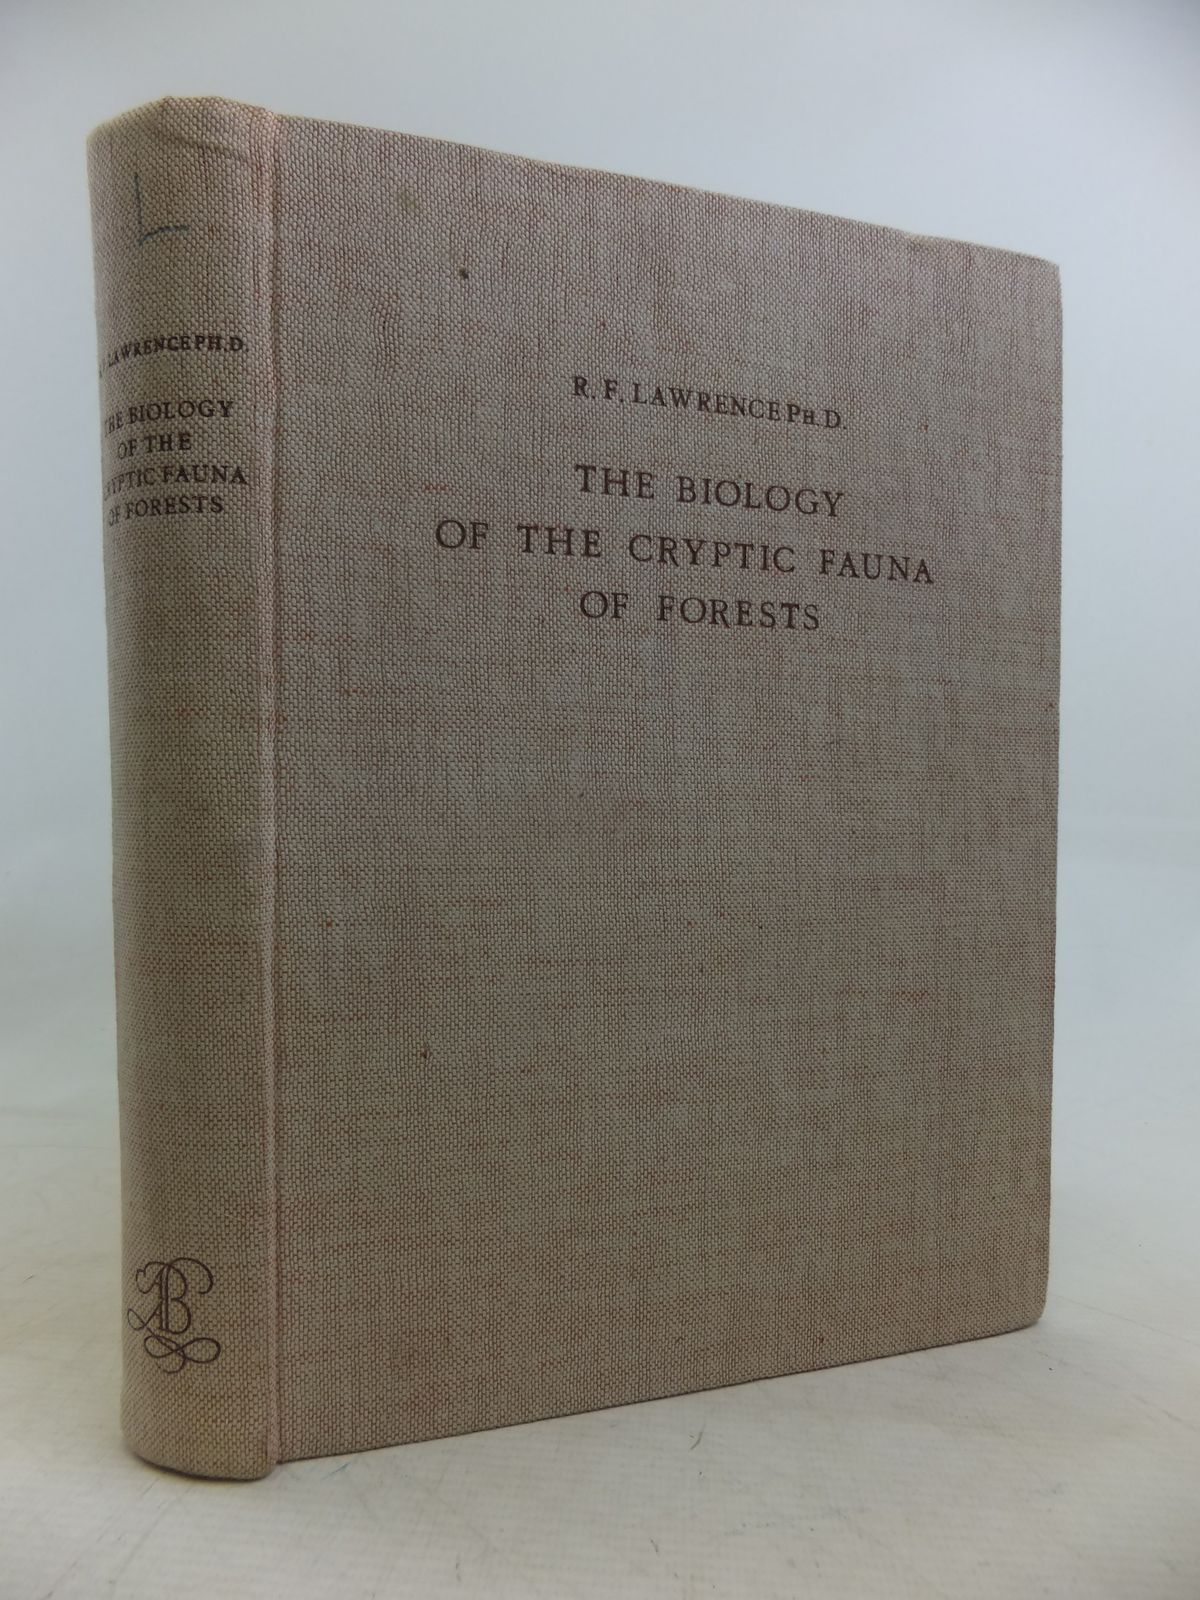 Photo of THE BIOLOGY OF THE CRYPTIC FAUNA OF FORESTS written by Lawrence, R.F. published by A.A. Balkema (STOCK CODE: 1809530)  for sale by Stella & Rose's Books